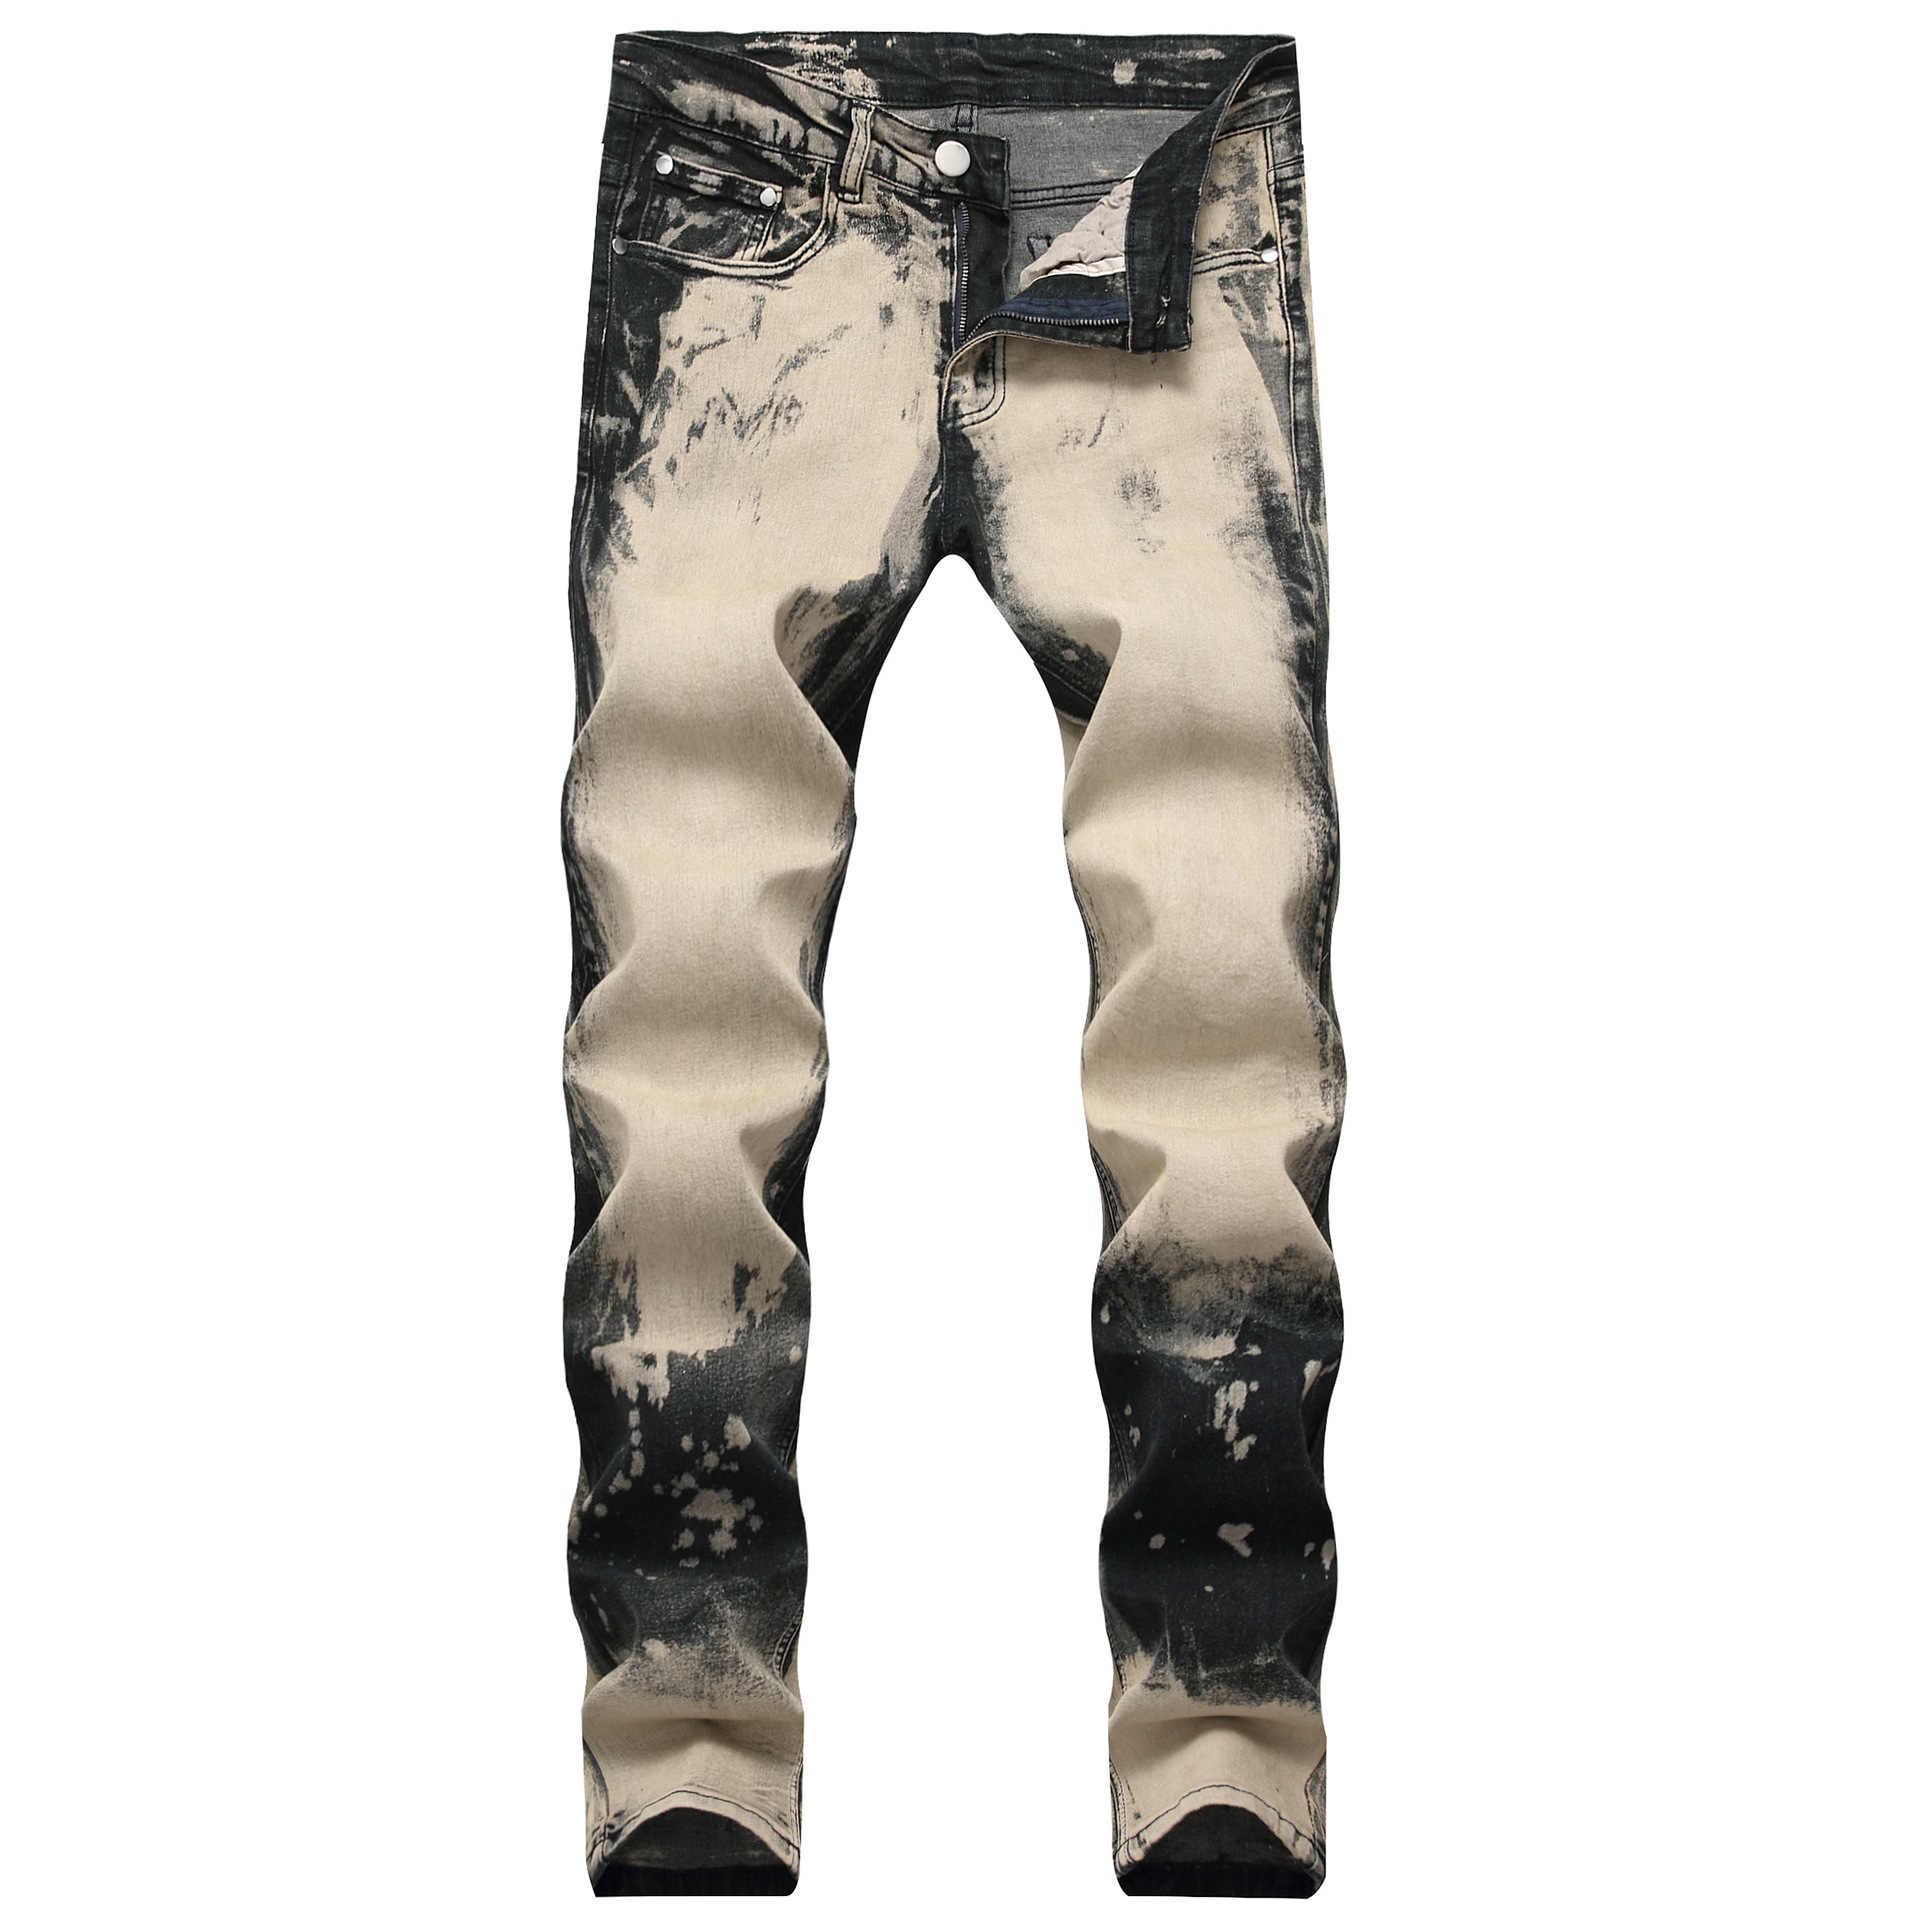 New Man Jeans Ripped Jeans for Men Color Printing Design Creative Personality European and American Style Jeans Men